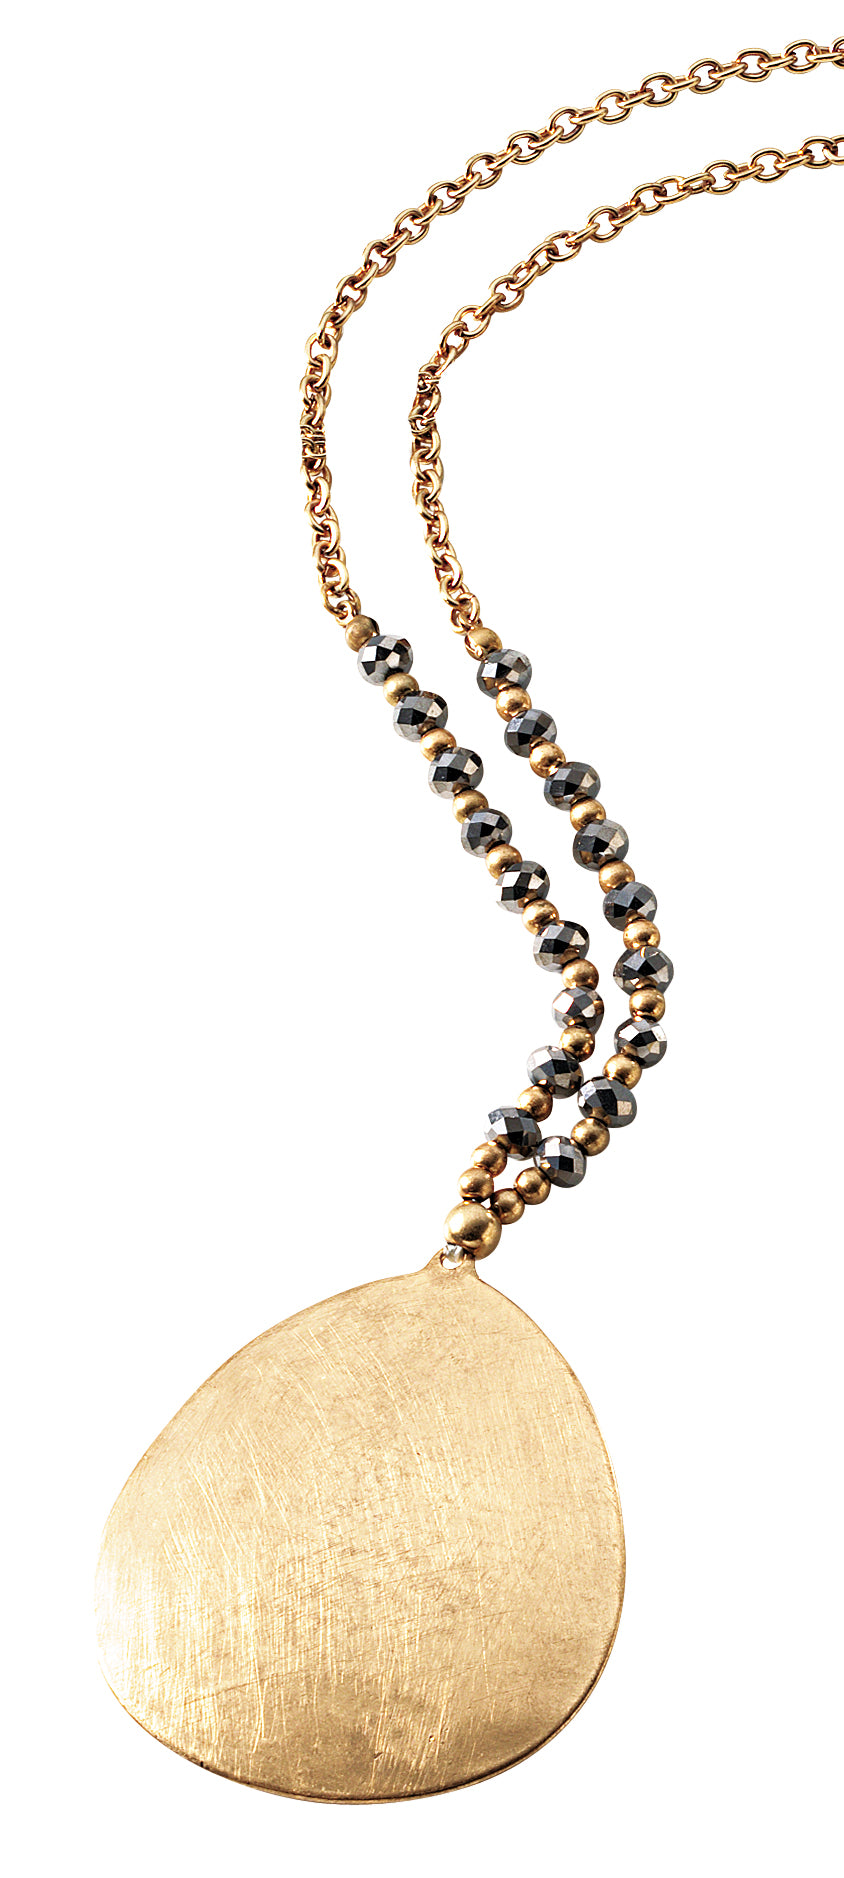 Long gold beaded chain with large gold metal disc pendant